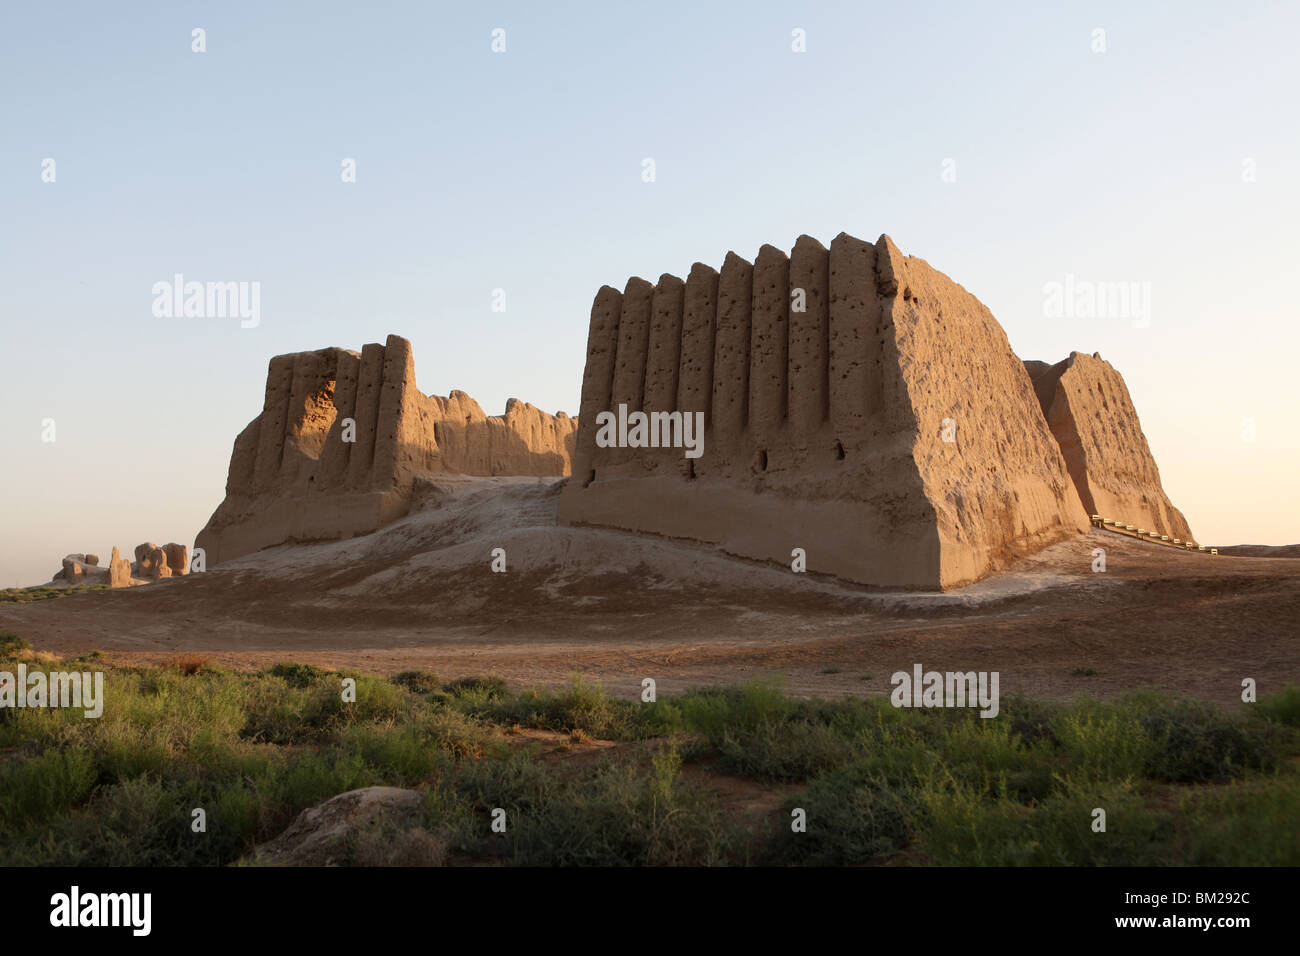 Ruins of Great or Big Kyz Kala Palace at ancient silk road city of Merv ( Mary ) in Turkmenistan. - Stock Image